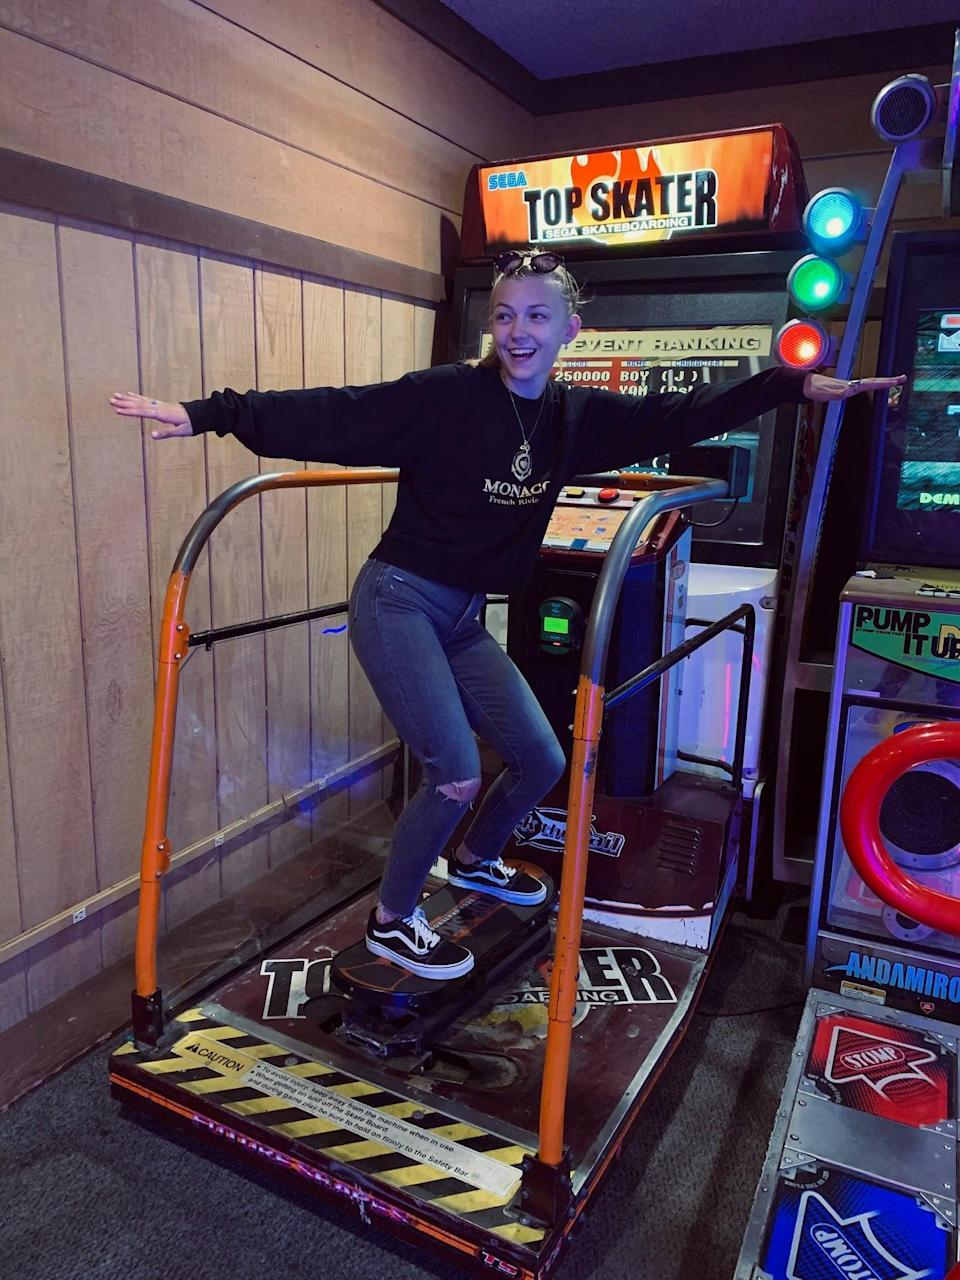 Gabby Petito plays a skateboarding video game at an arcade. (Find Gabby Facebook page)